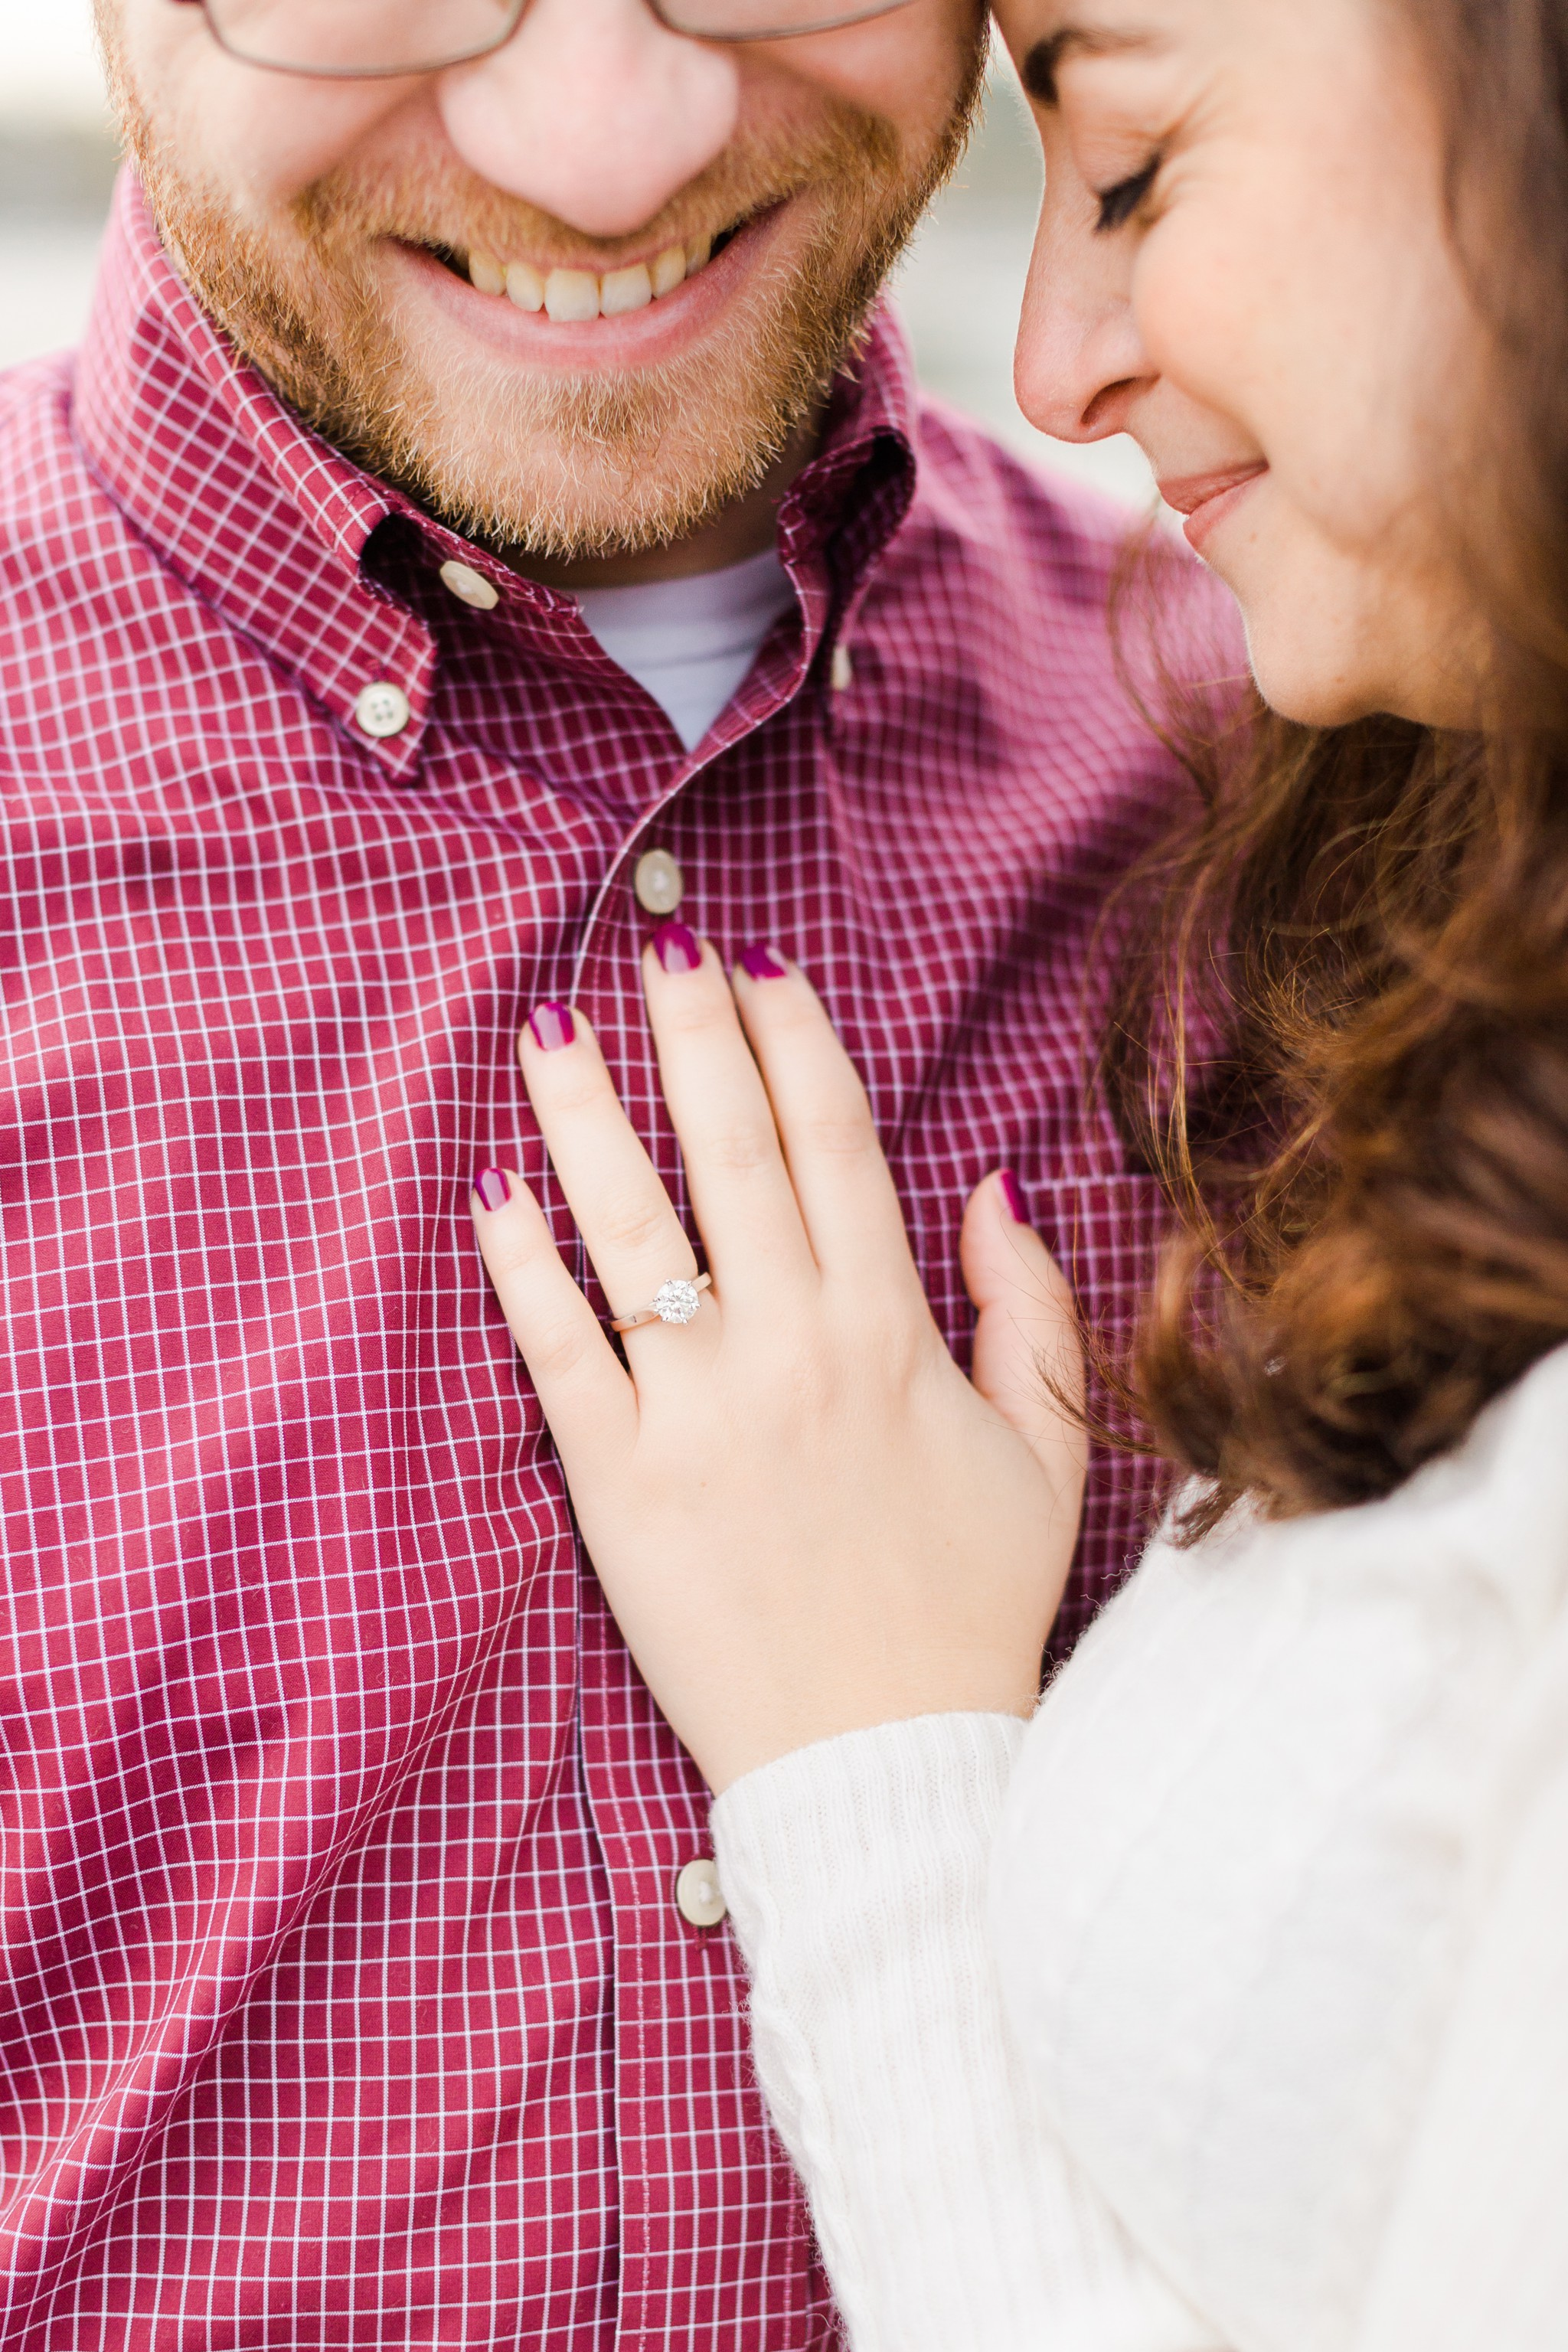 deborah_zoe_photography_engagement_session_0121.JPG